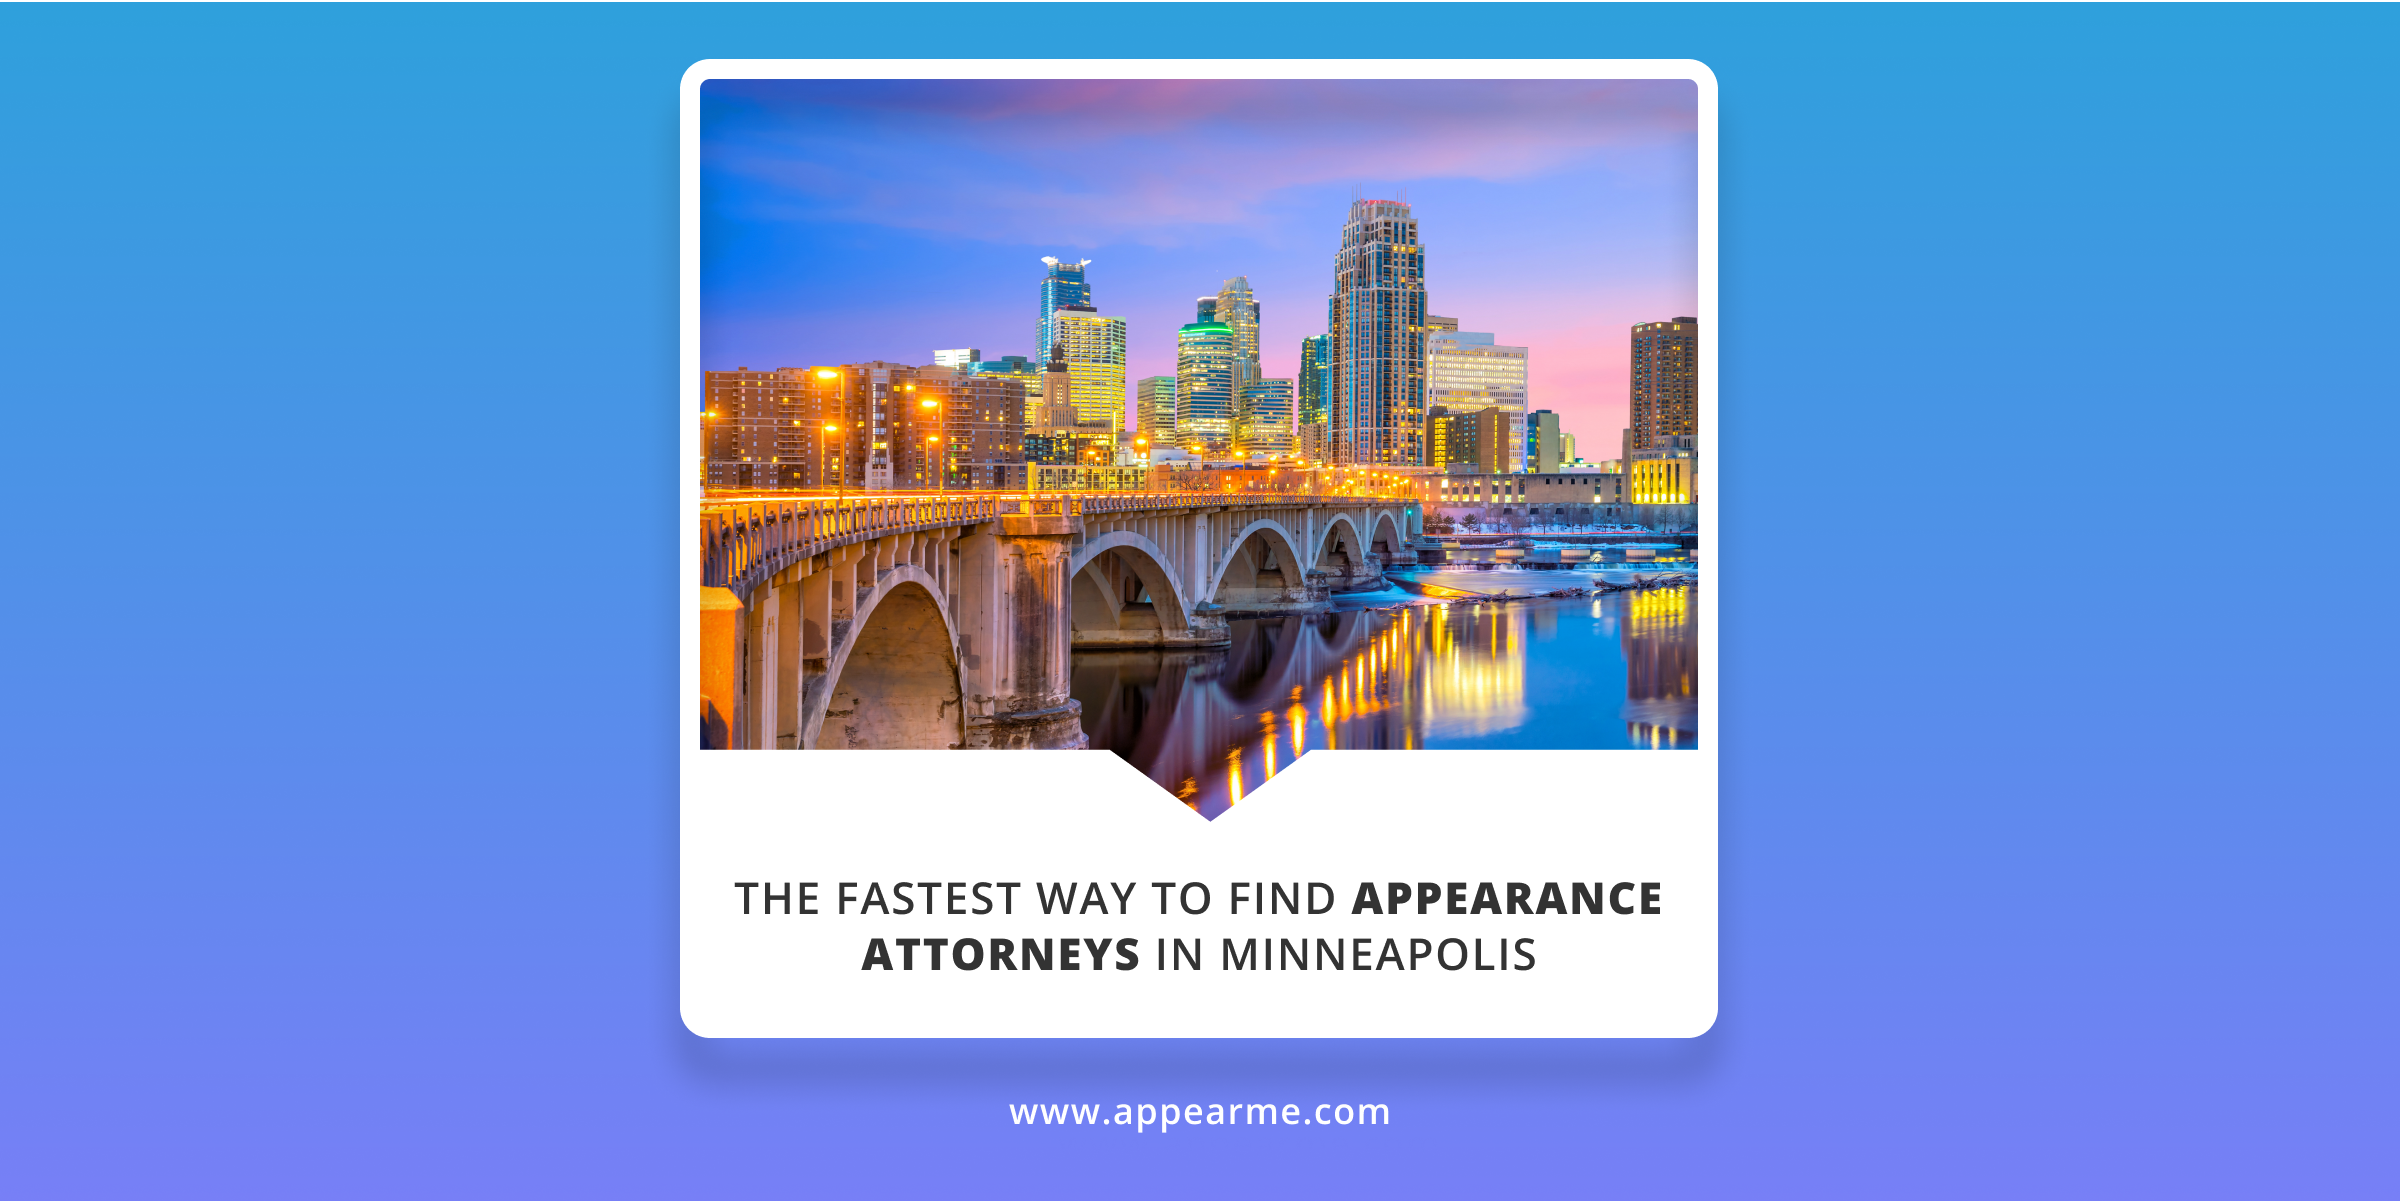 The Fastest Way to Find Appearance Attorneys in Minneapolis